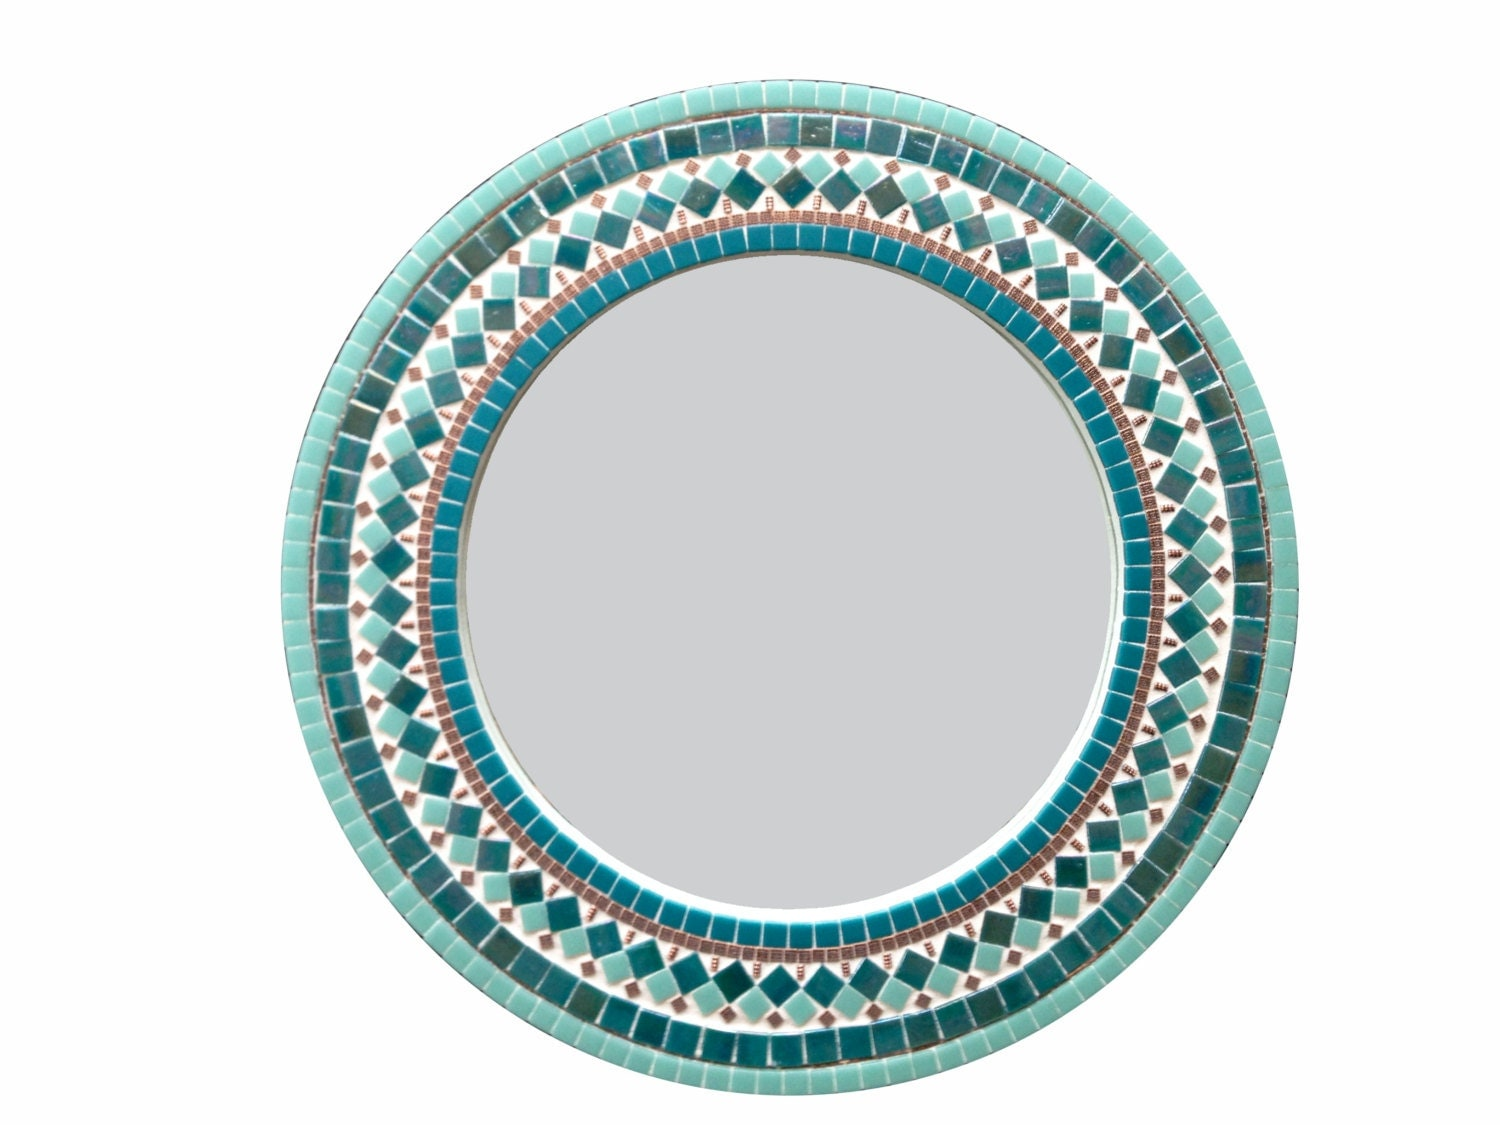 Round mosaic mirror teal kitchen or dining room decor wall for Mosaic mirror